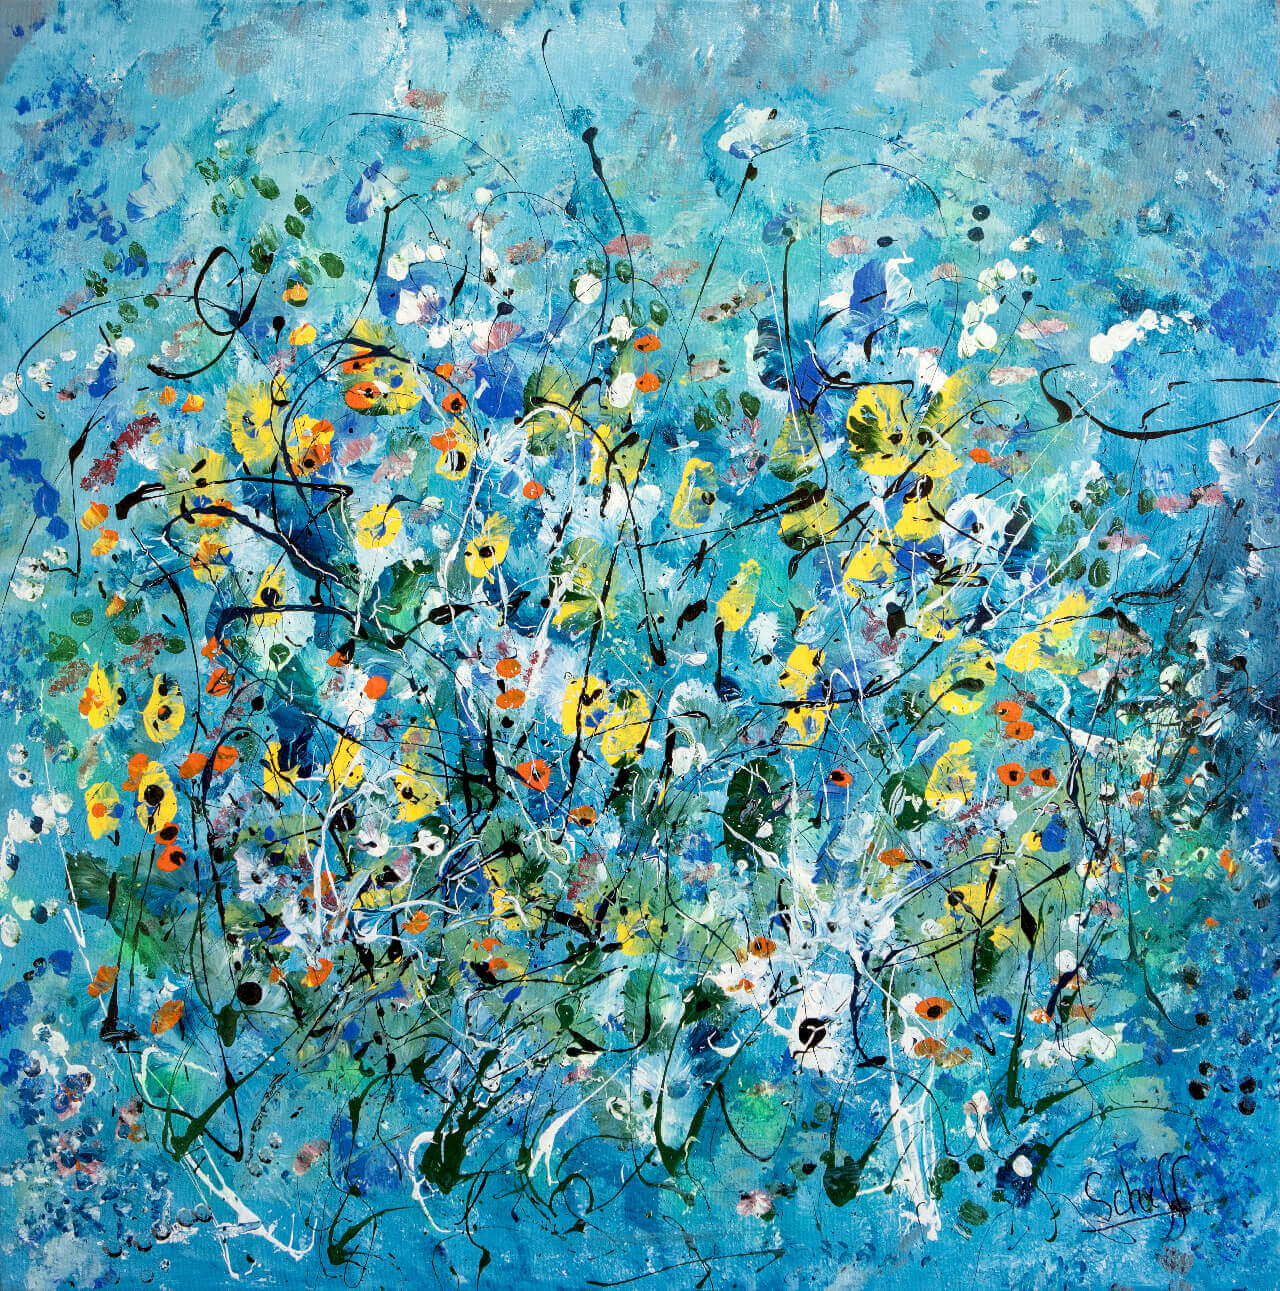 SPRING FLOWERS, 40x40, Acrylic on Canvas